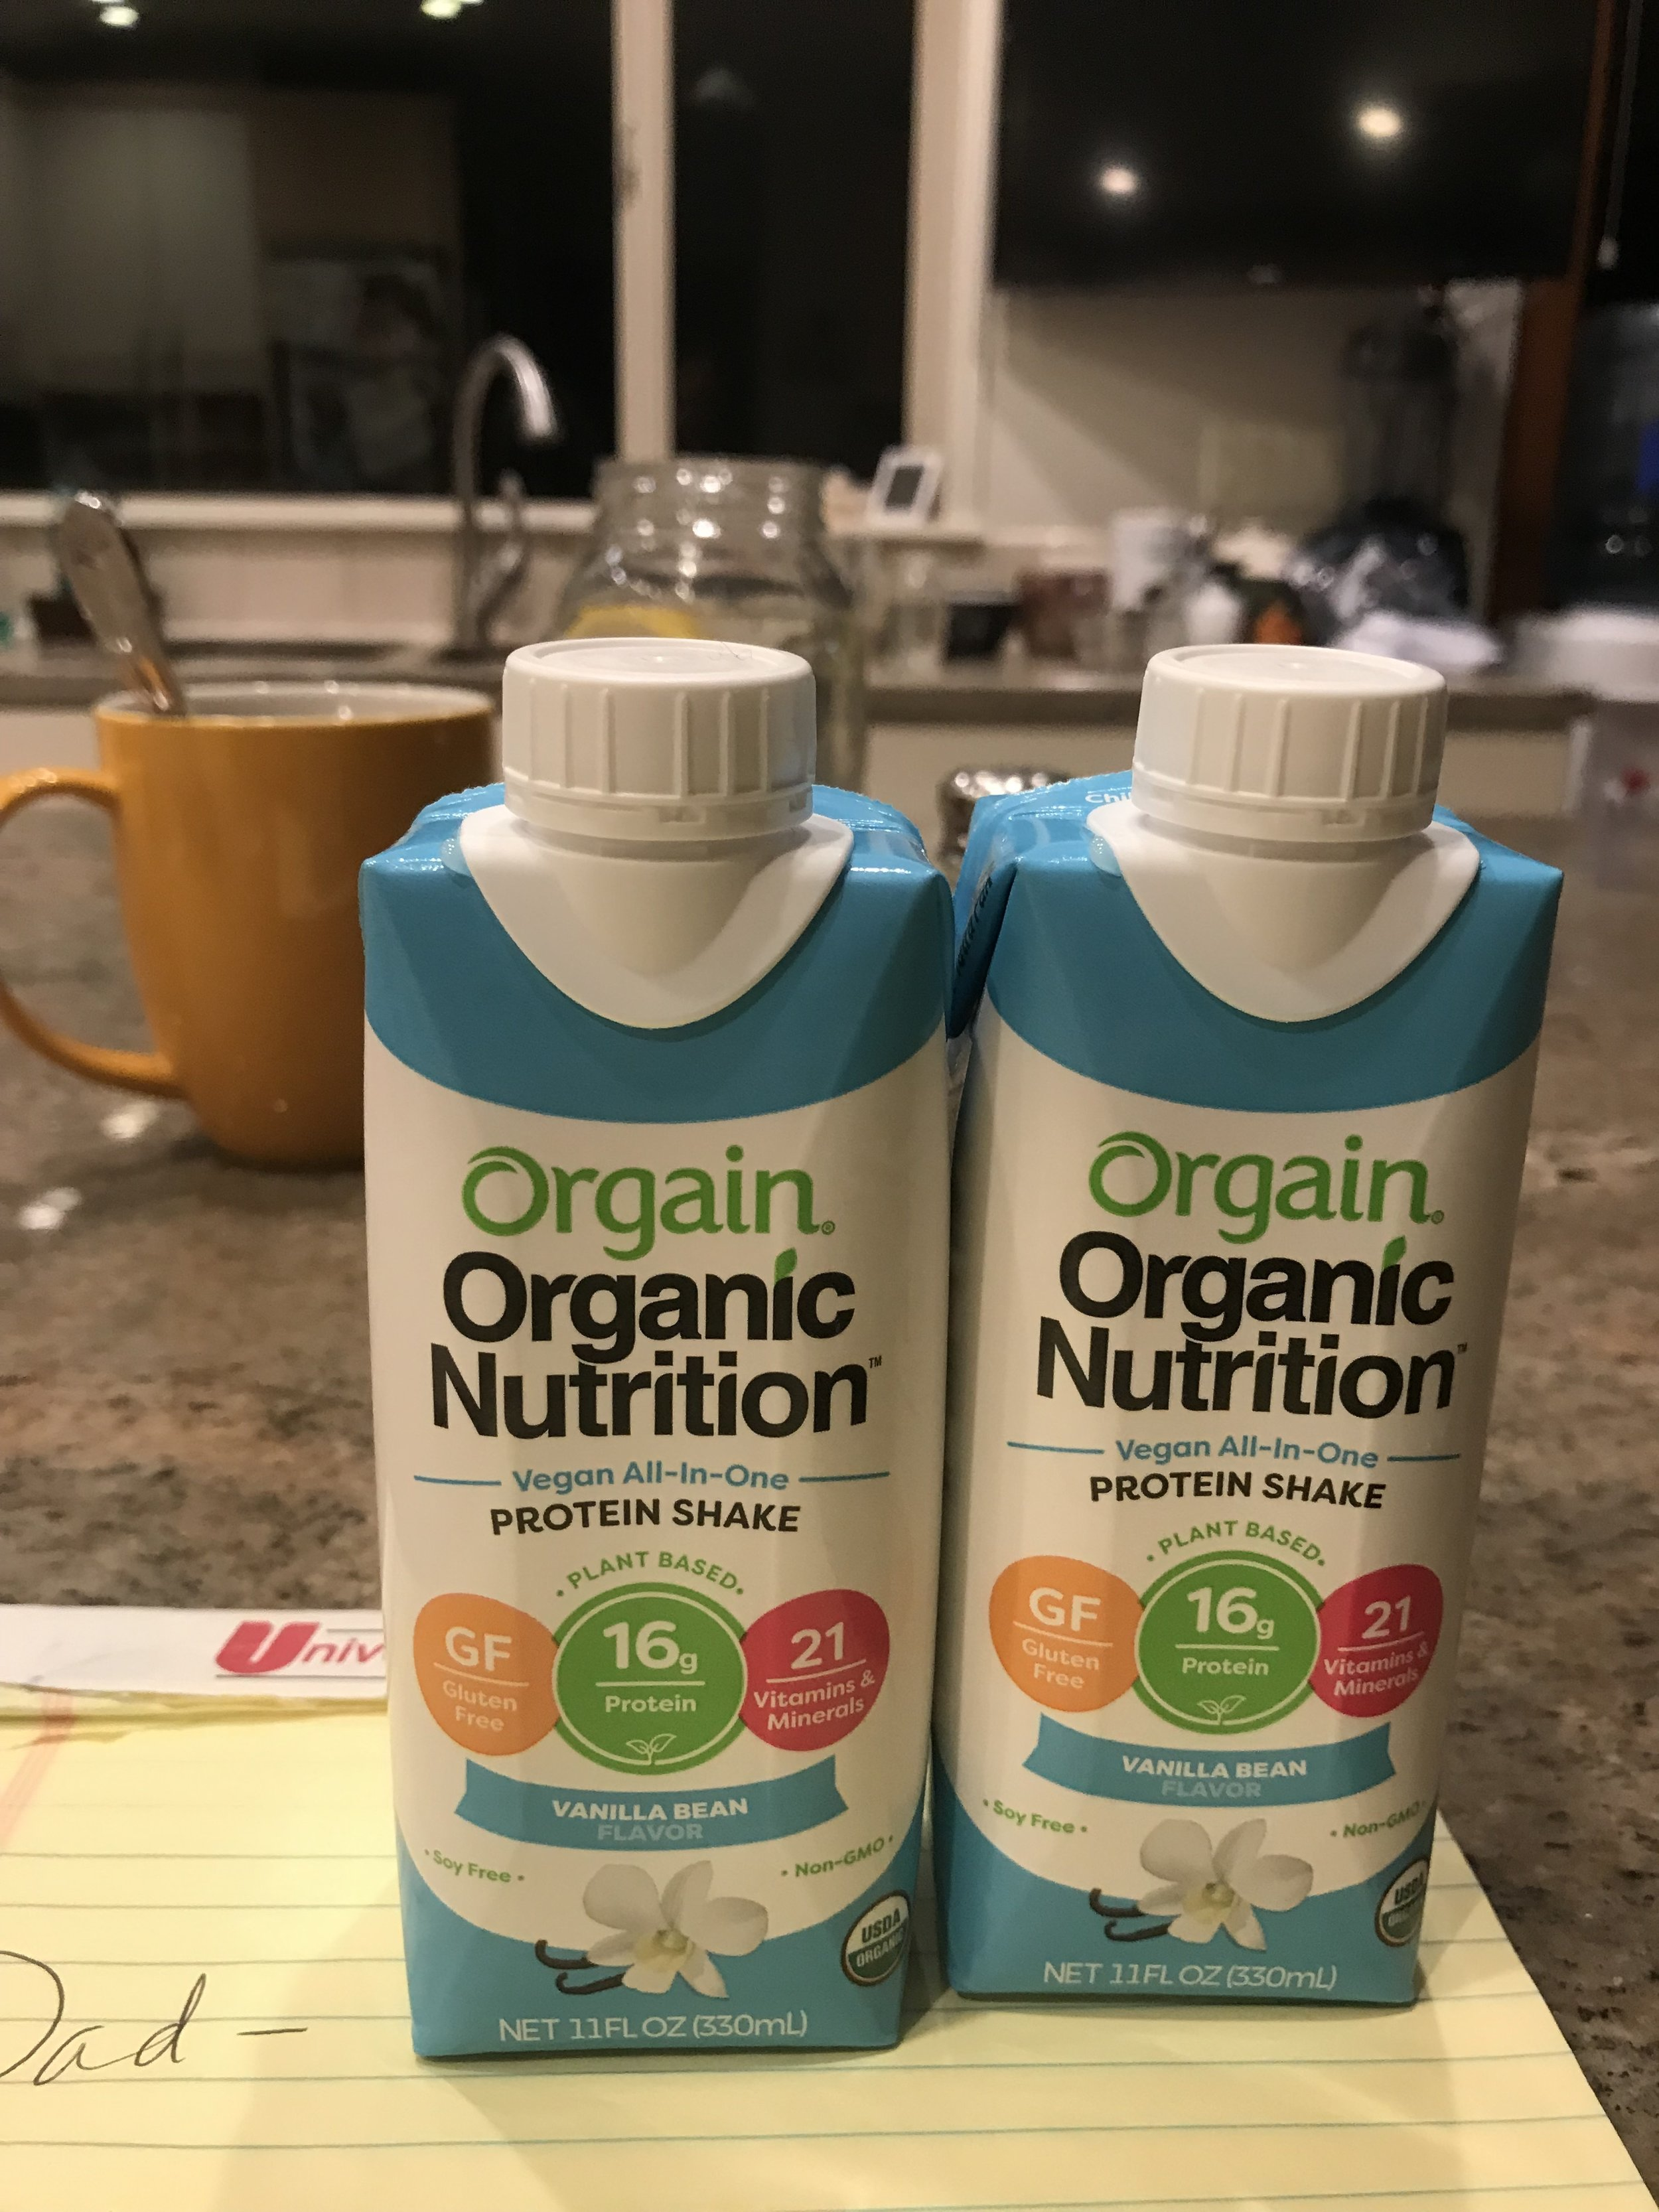 I'm so out of it that I ordered the little travel size of these protein drinks on Amazon when I really wanted the large 32 ox drinks. I'm so spatially impaired that I still didn't realize it when the boxes arrived! I ripped into them and then realized my mistake. I'm hoping my dad will drink them, but trying to get him to do any new foods has been an uphill battle. Sigh….